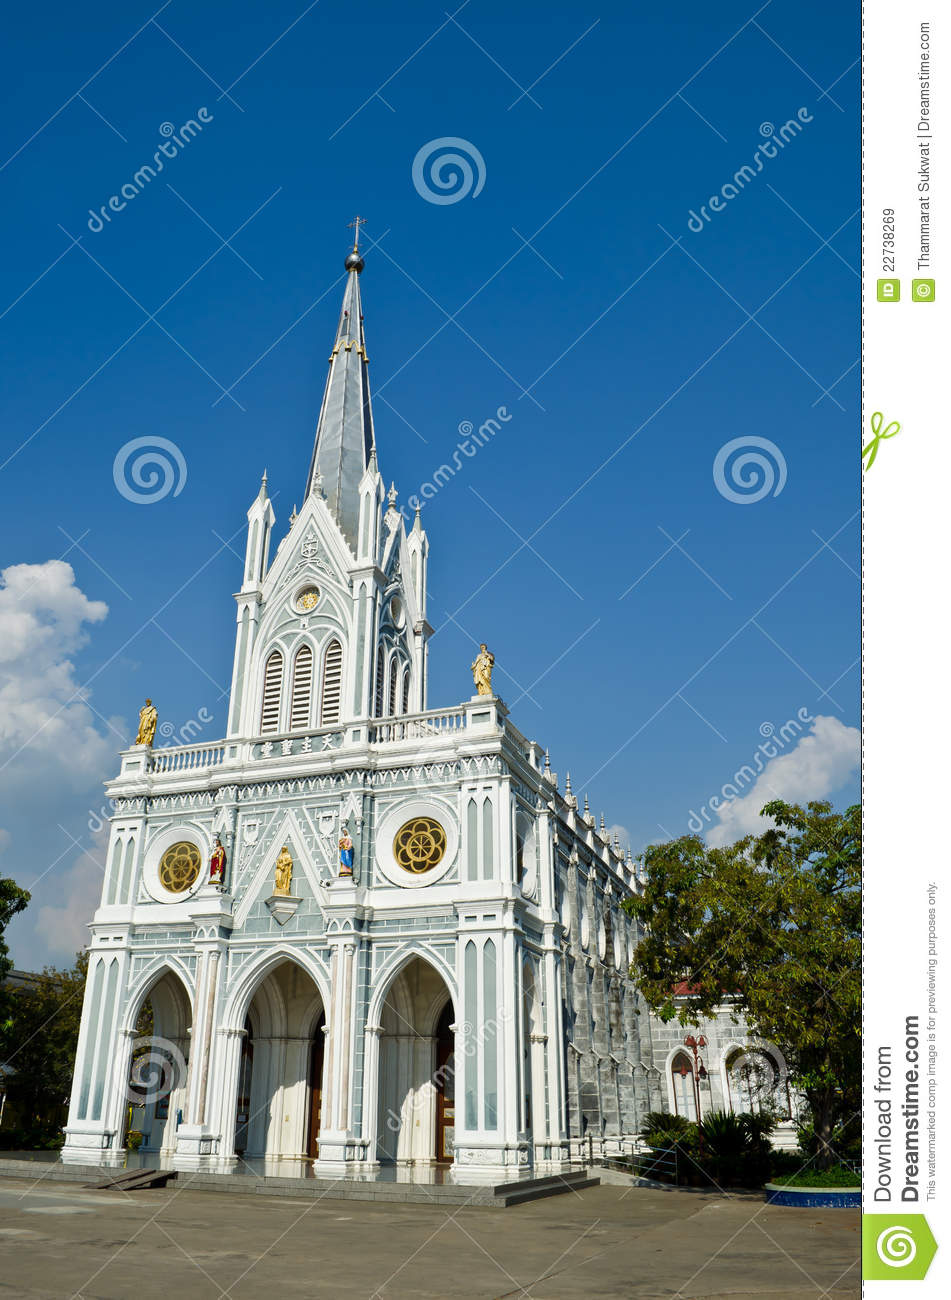 Samut Songkhram Thailand  city photos gallery : White Church, Samut Songkhram, Thailand Royalty Free Stock Images ...